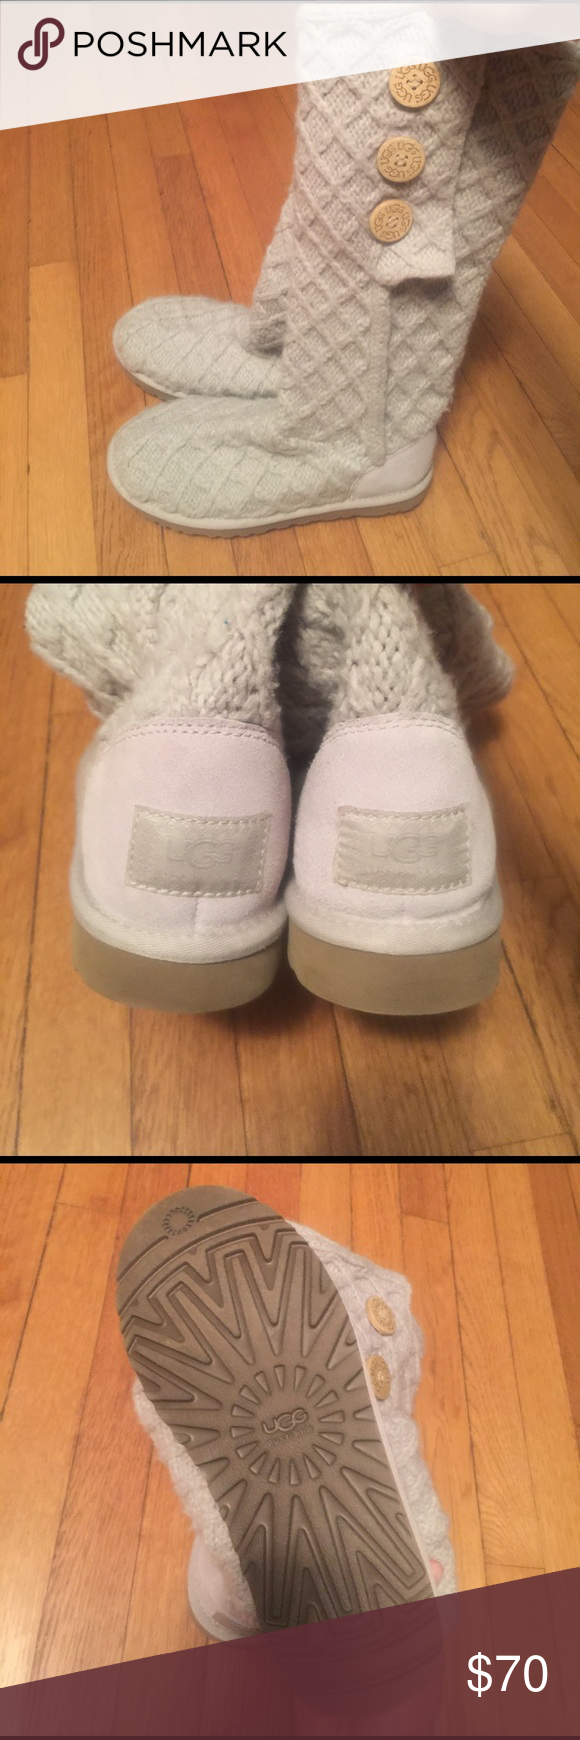 UGG Lattice Cardy Knit Boots Cream 7 Cute boots. Authentic UGG. Barely worn. Soles in great shape. UGG Shoes